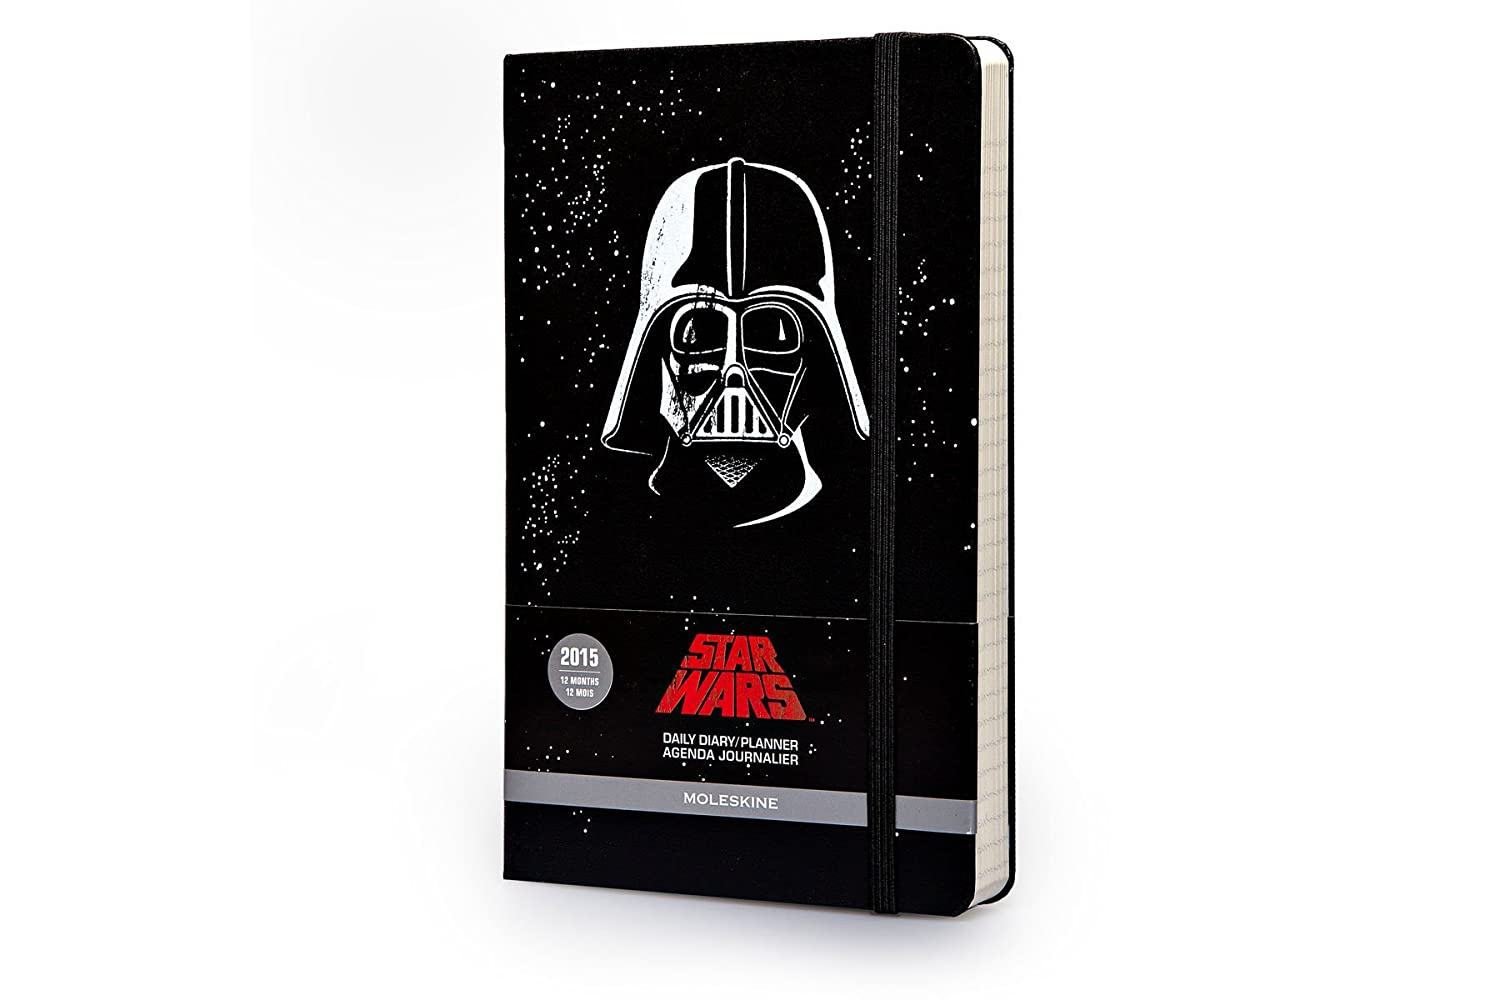 Amazon.com : Moleskine 2015 Star Wars Limited Edition Daily ...